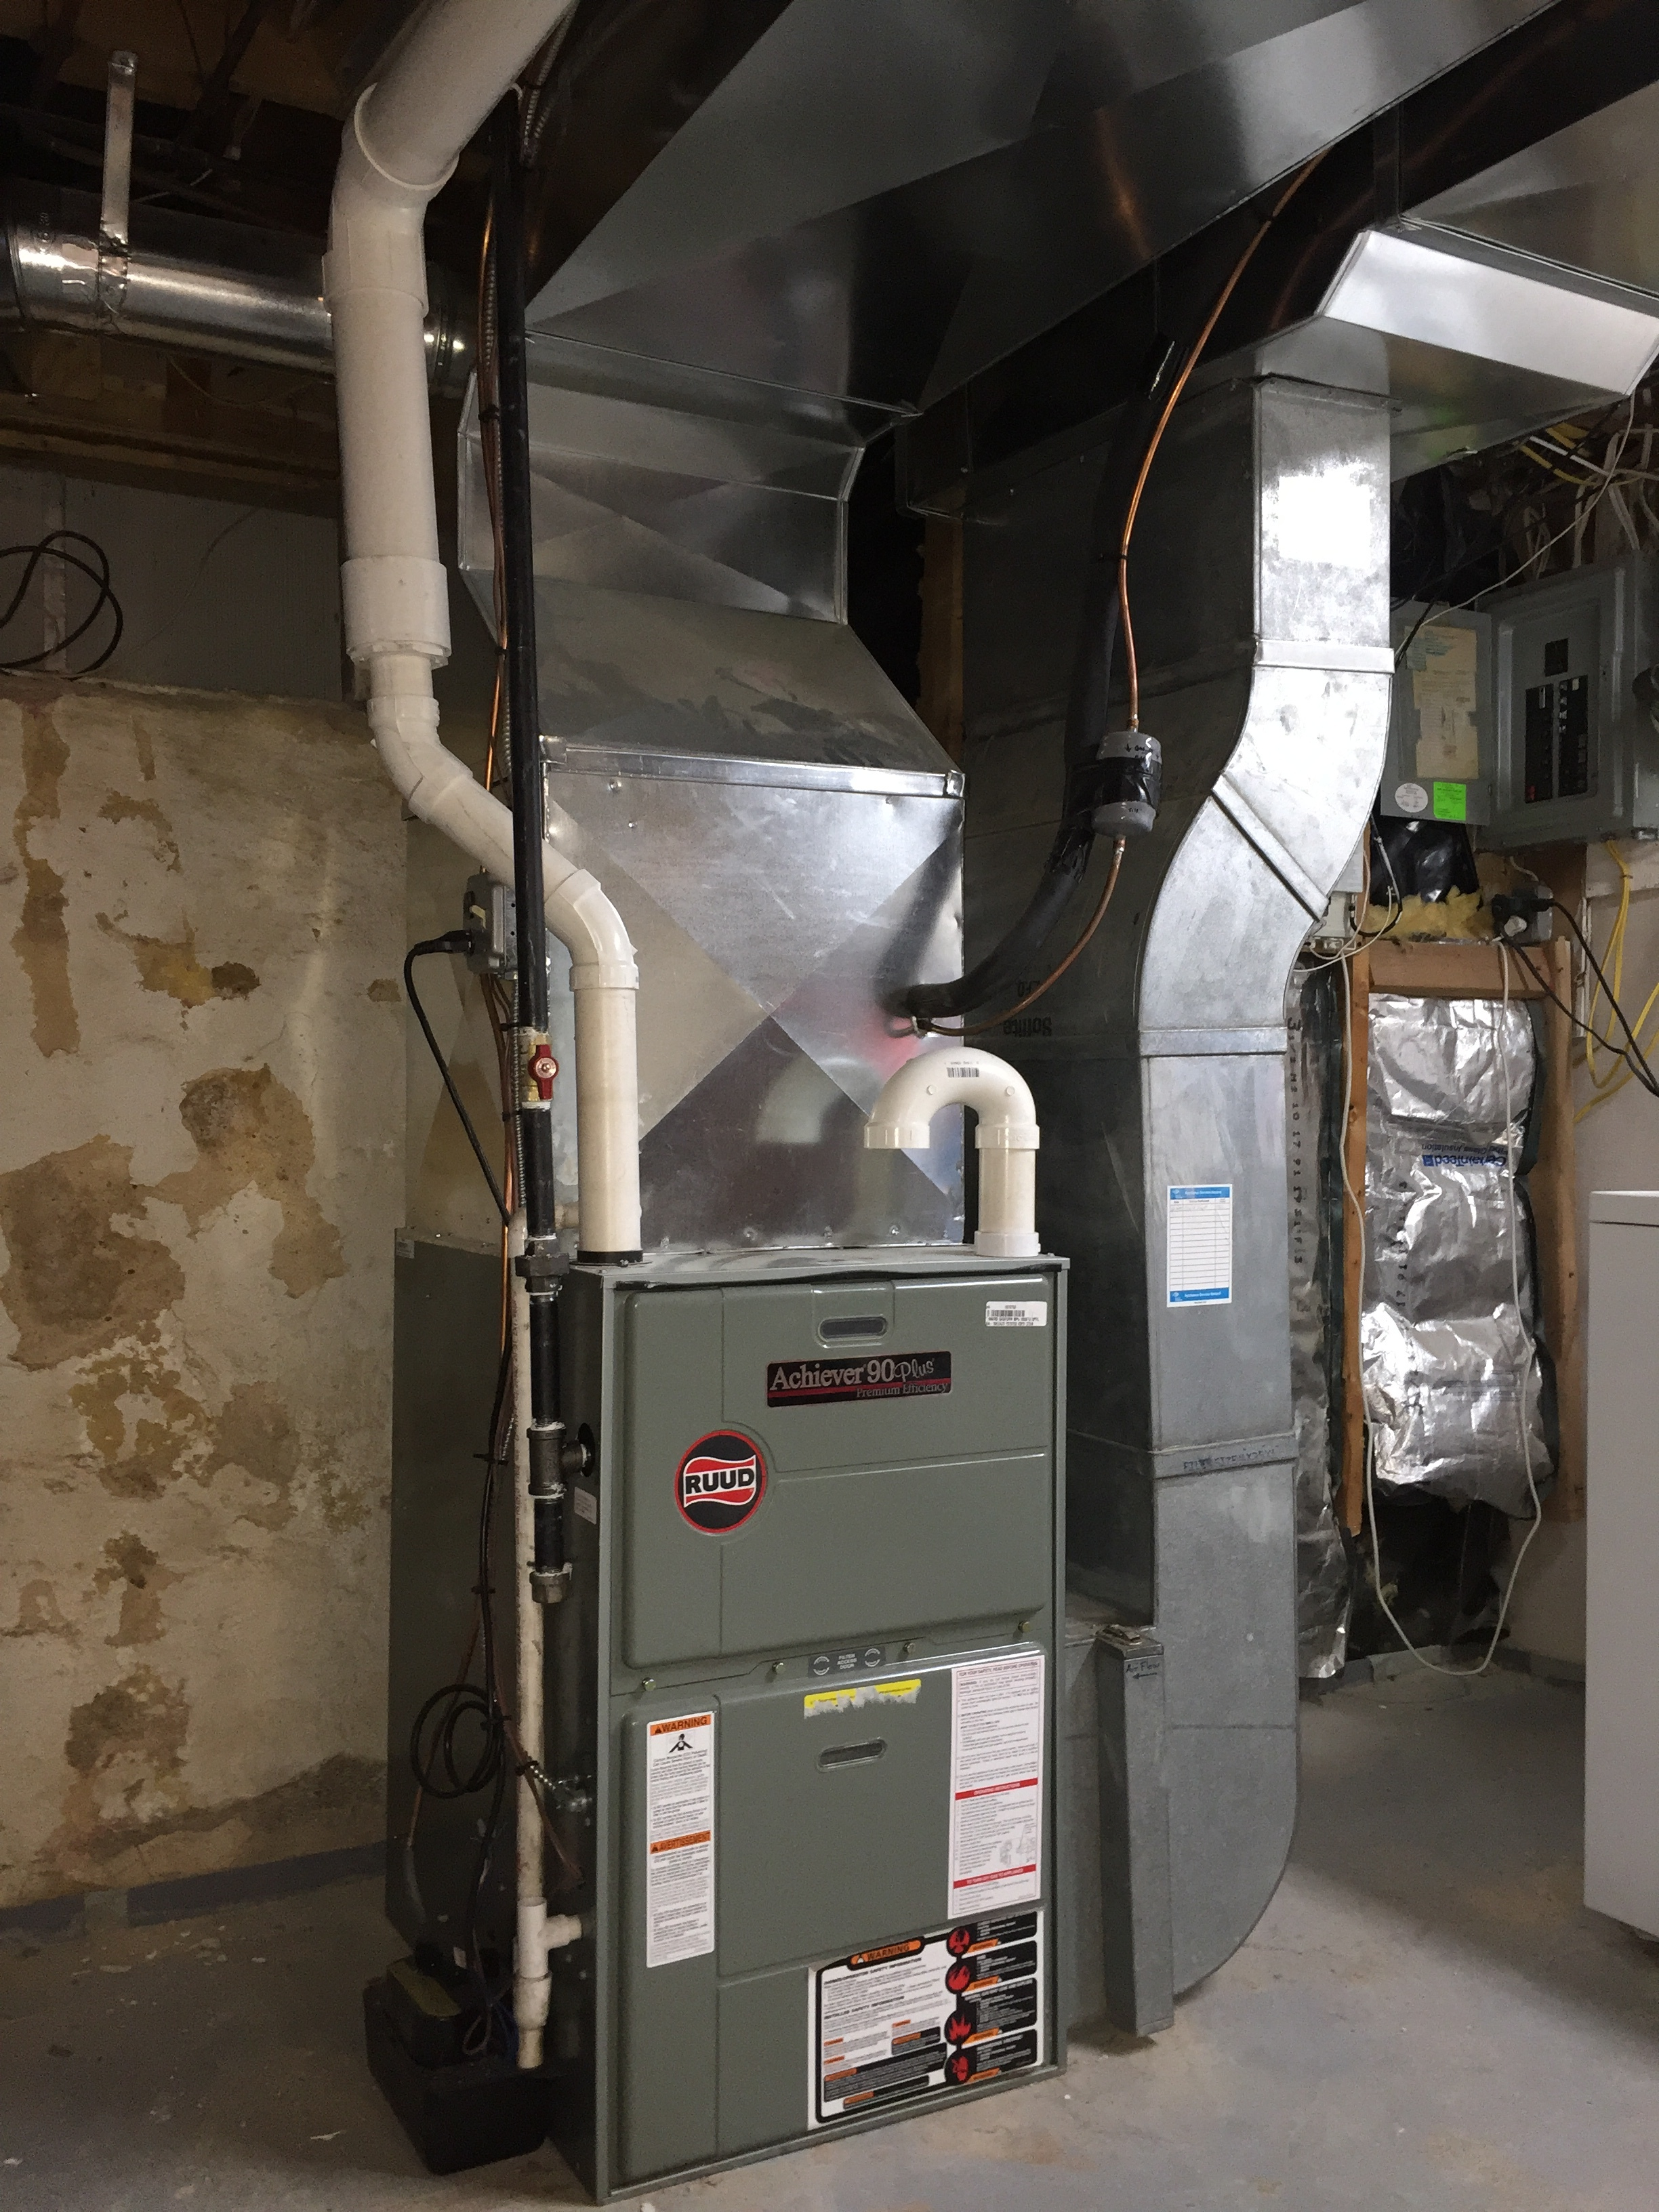 High Efficiency Furnace installation; we were able here to re-do the supply lines for more efficient air flow in the first flow / head room in the basement, then leverage the existing return lines for a cost savings.